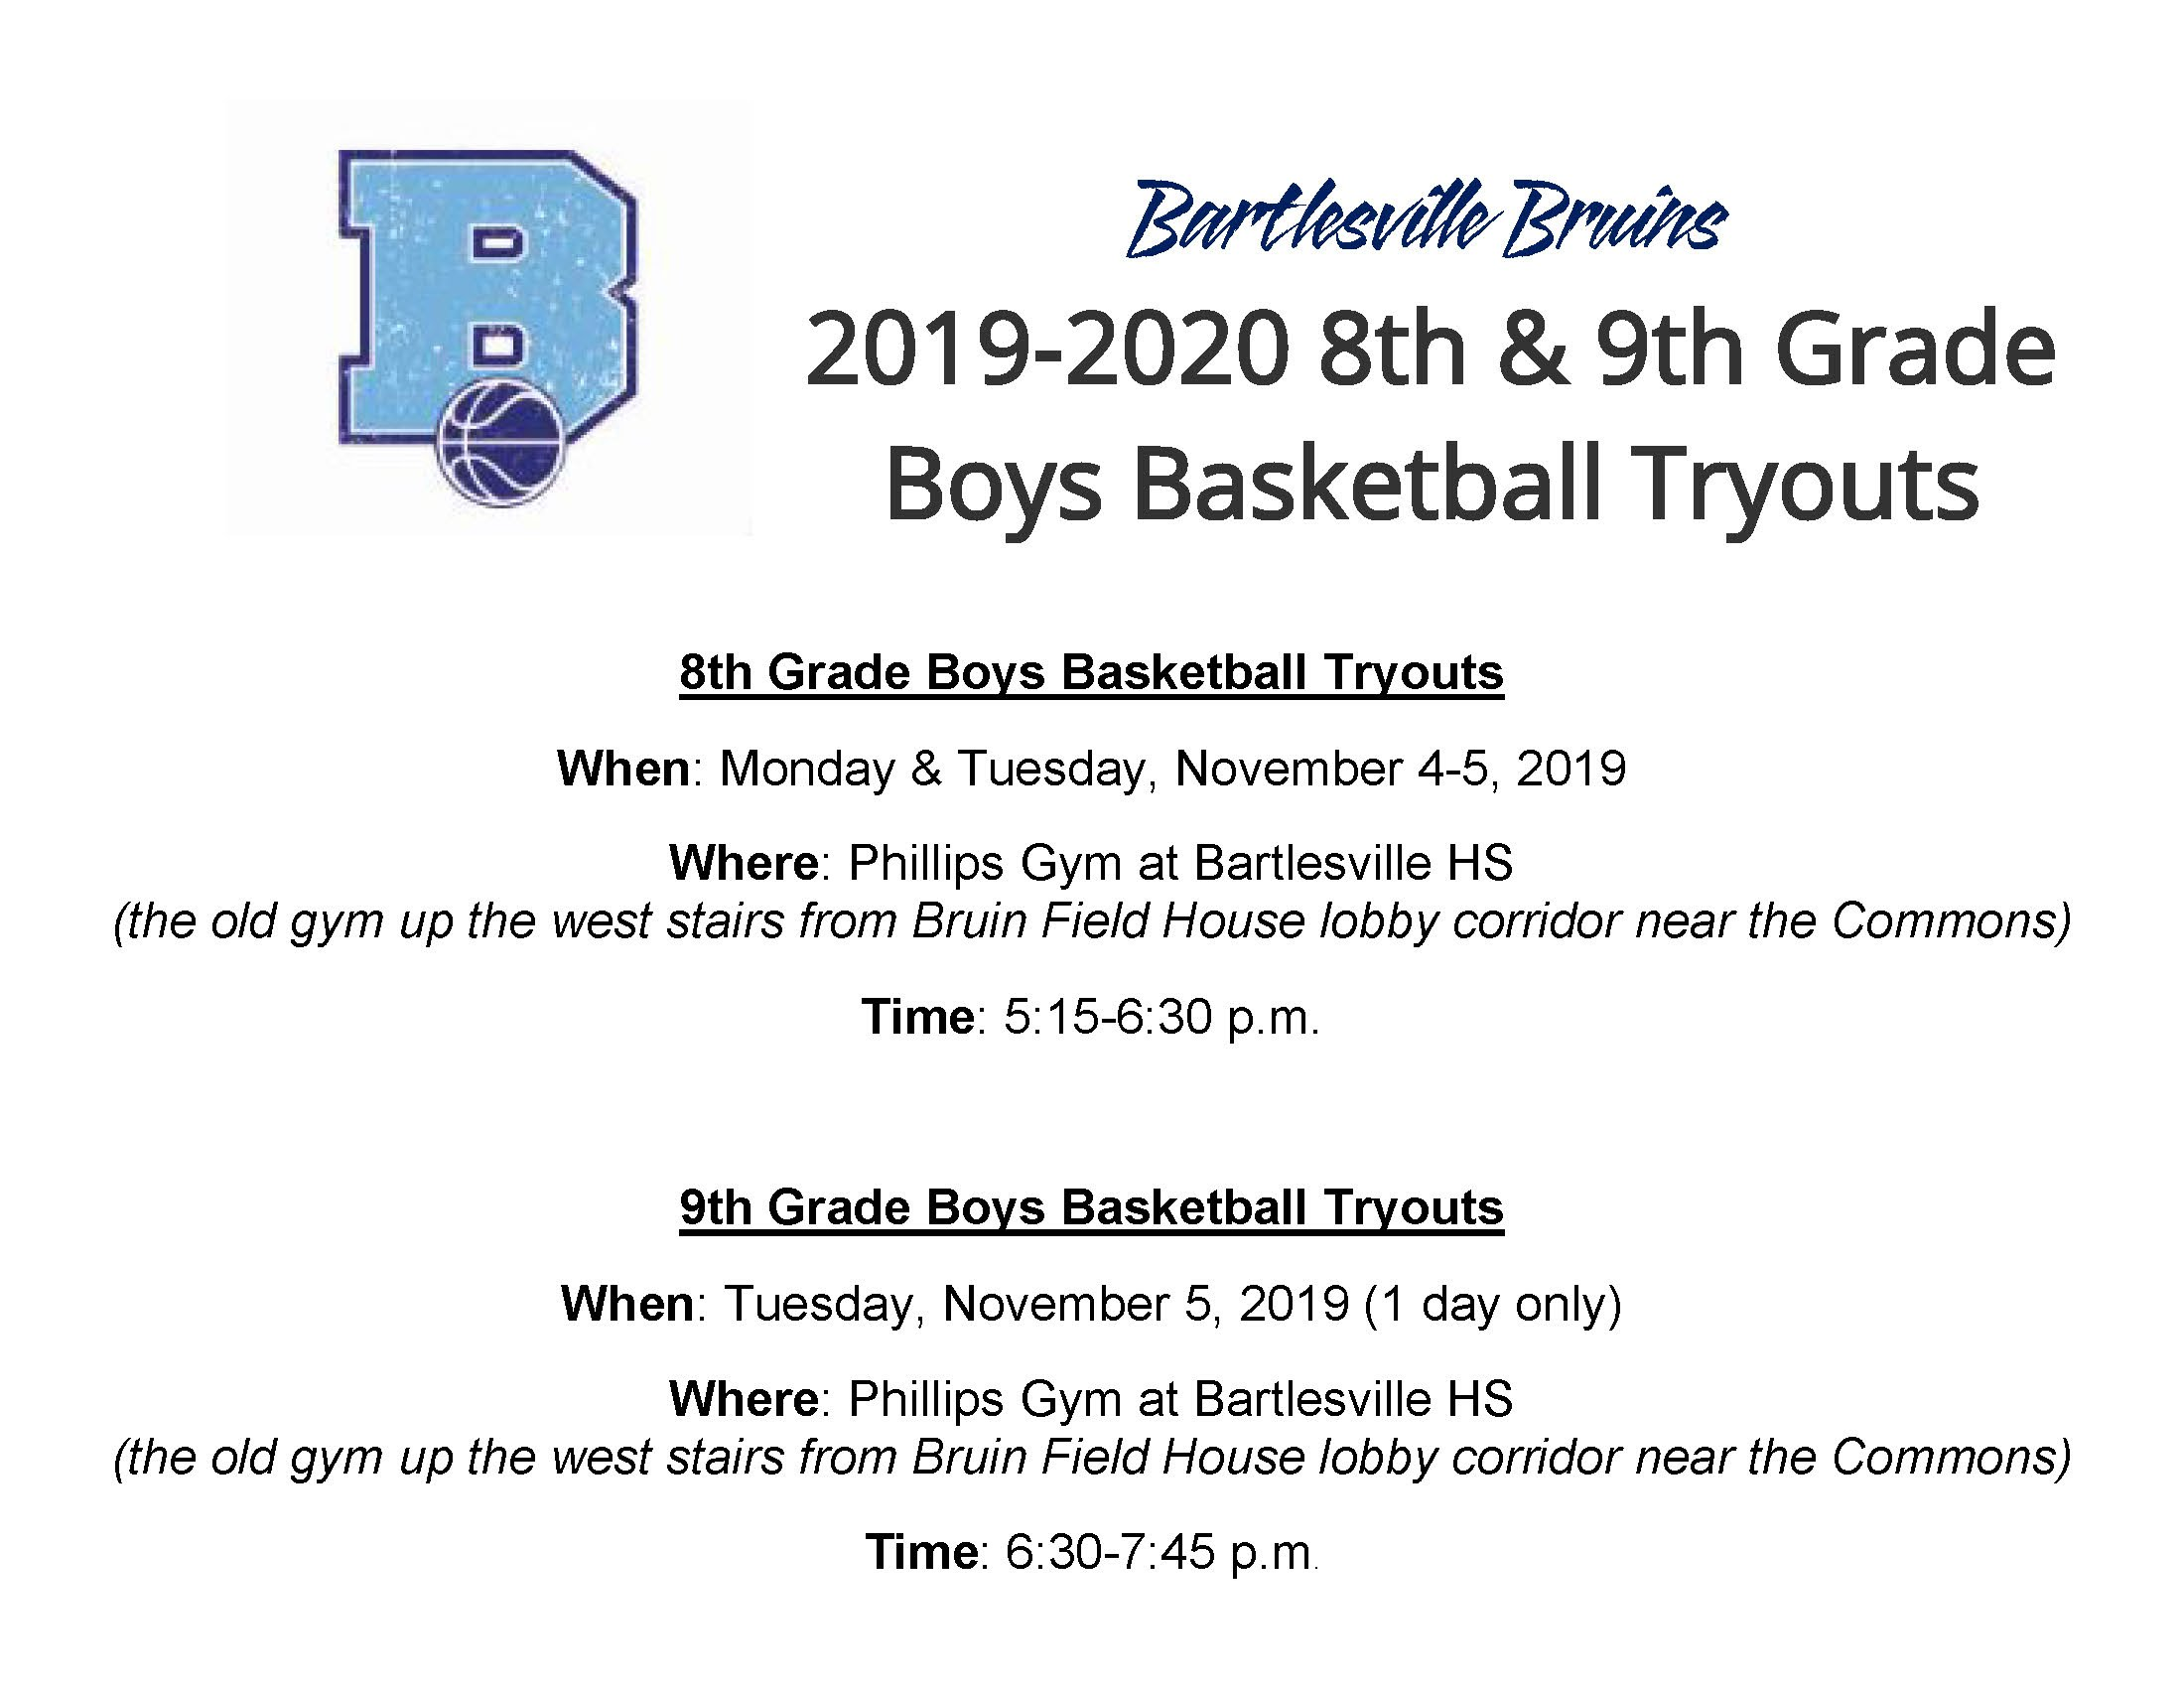 Tryouts